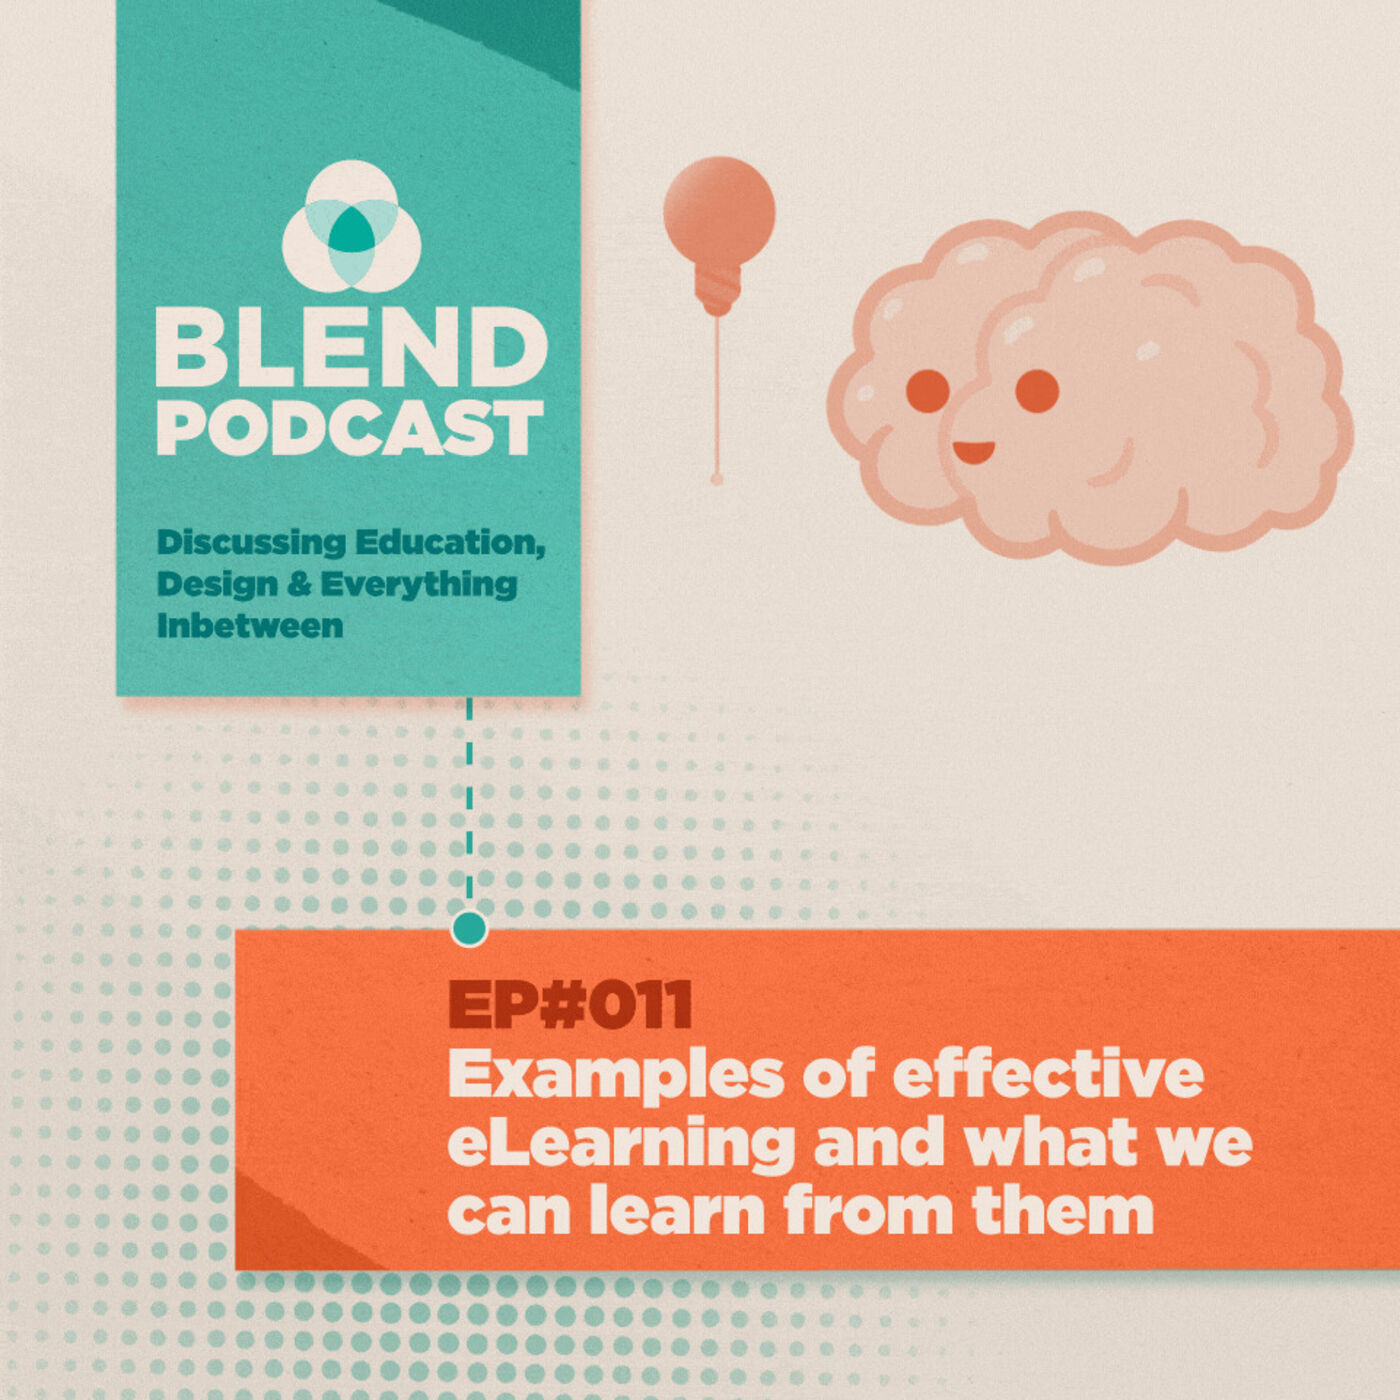 #11 Effective eLearning Examples